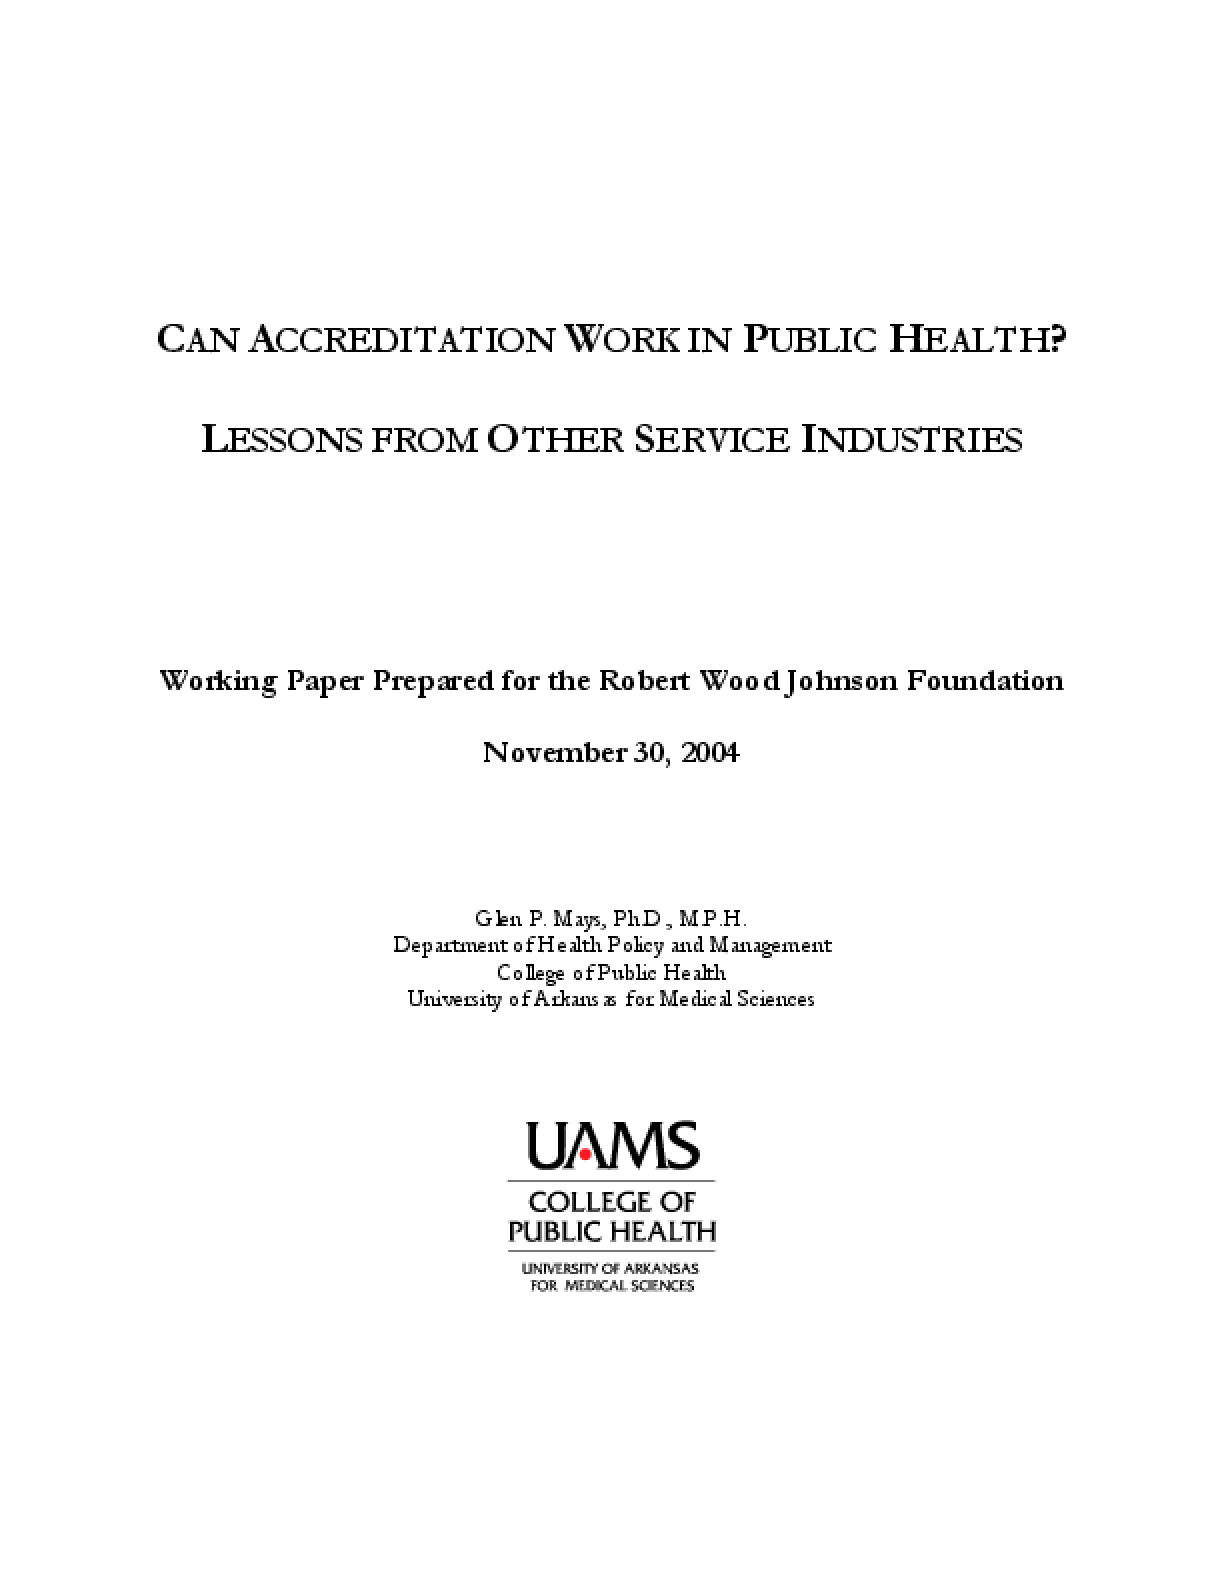 Can Accreditation Work in Public Health? Lessons From Other Service Industries